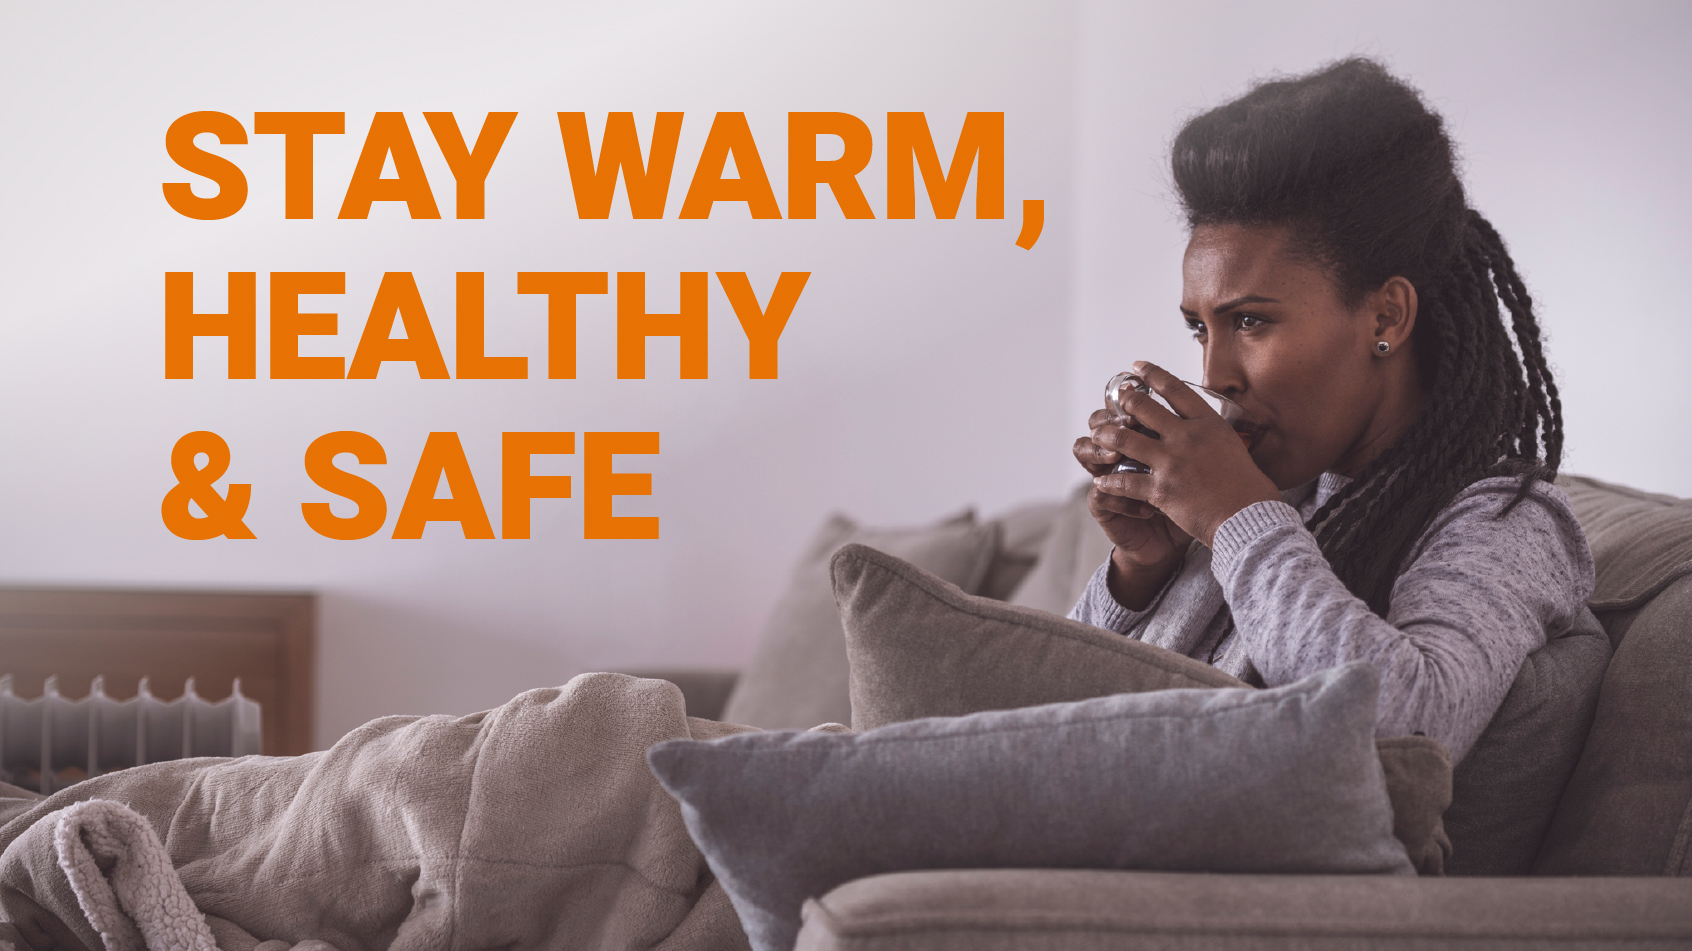 Stay warm, healthy and safe